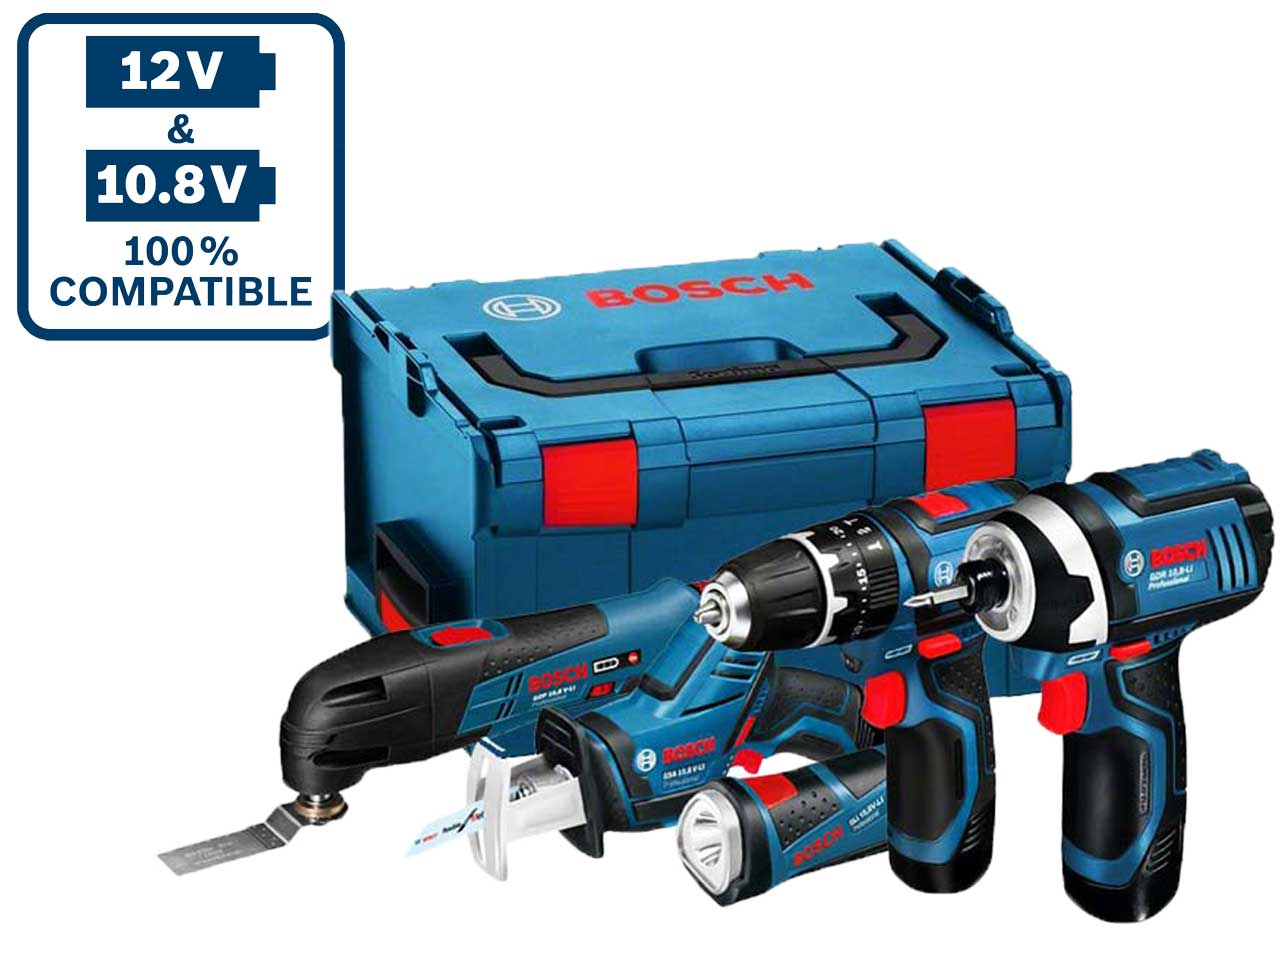 Bosch 12vgsbgdrfive 12v 3 x 2 0ah li ion 5pc power tool kit - Bosch 10 8 v ...